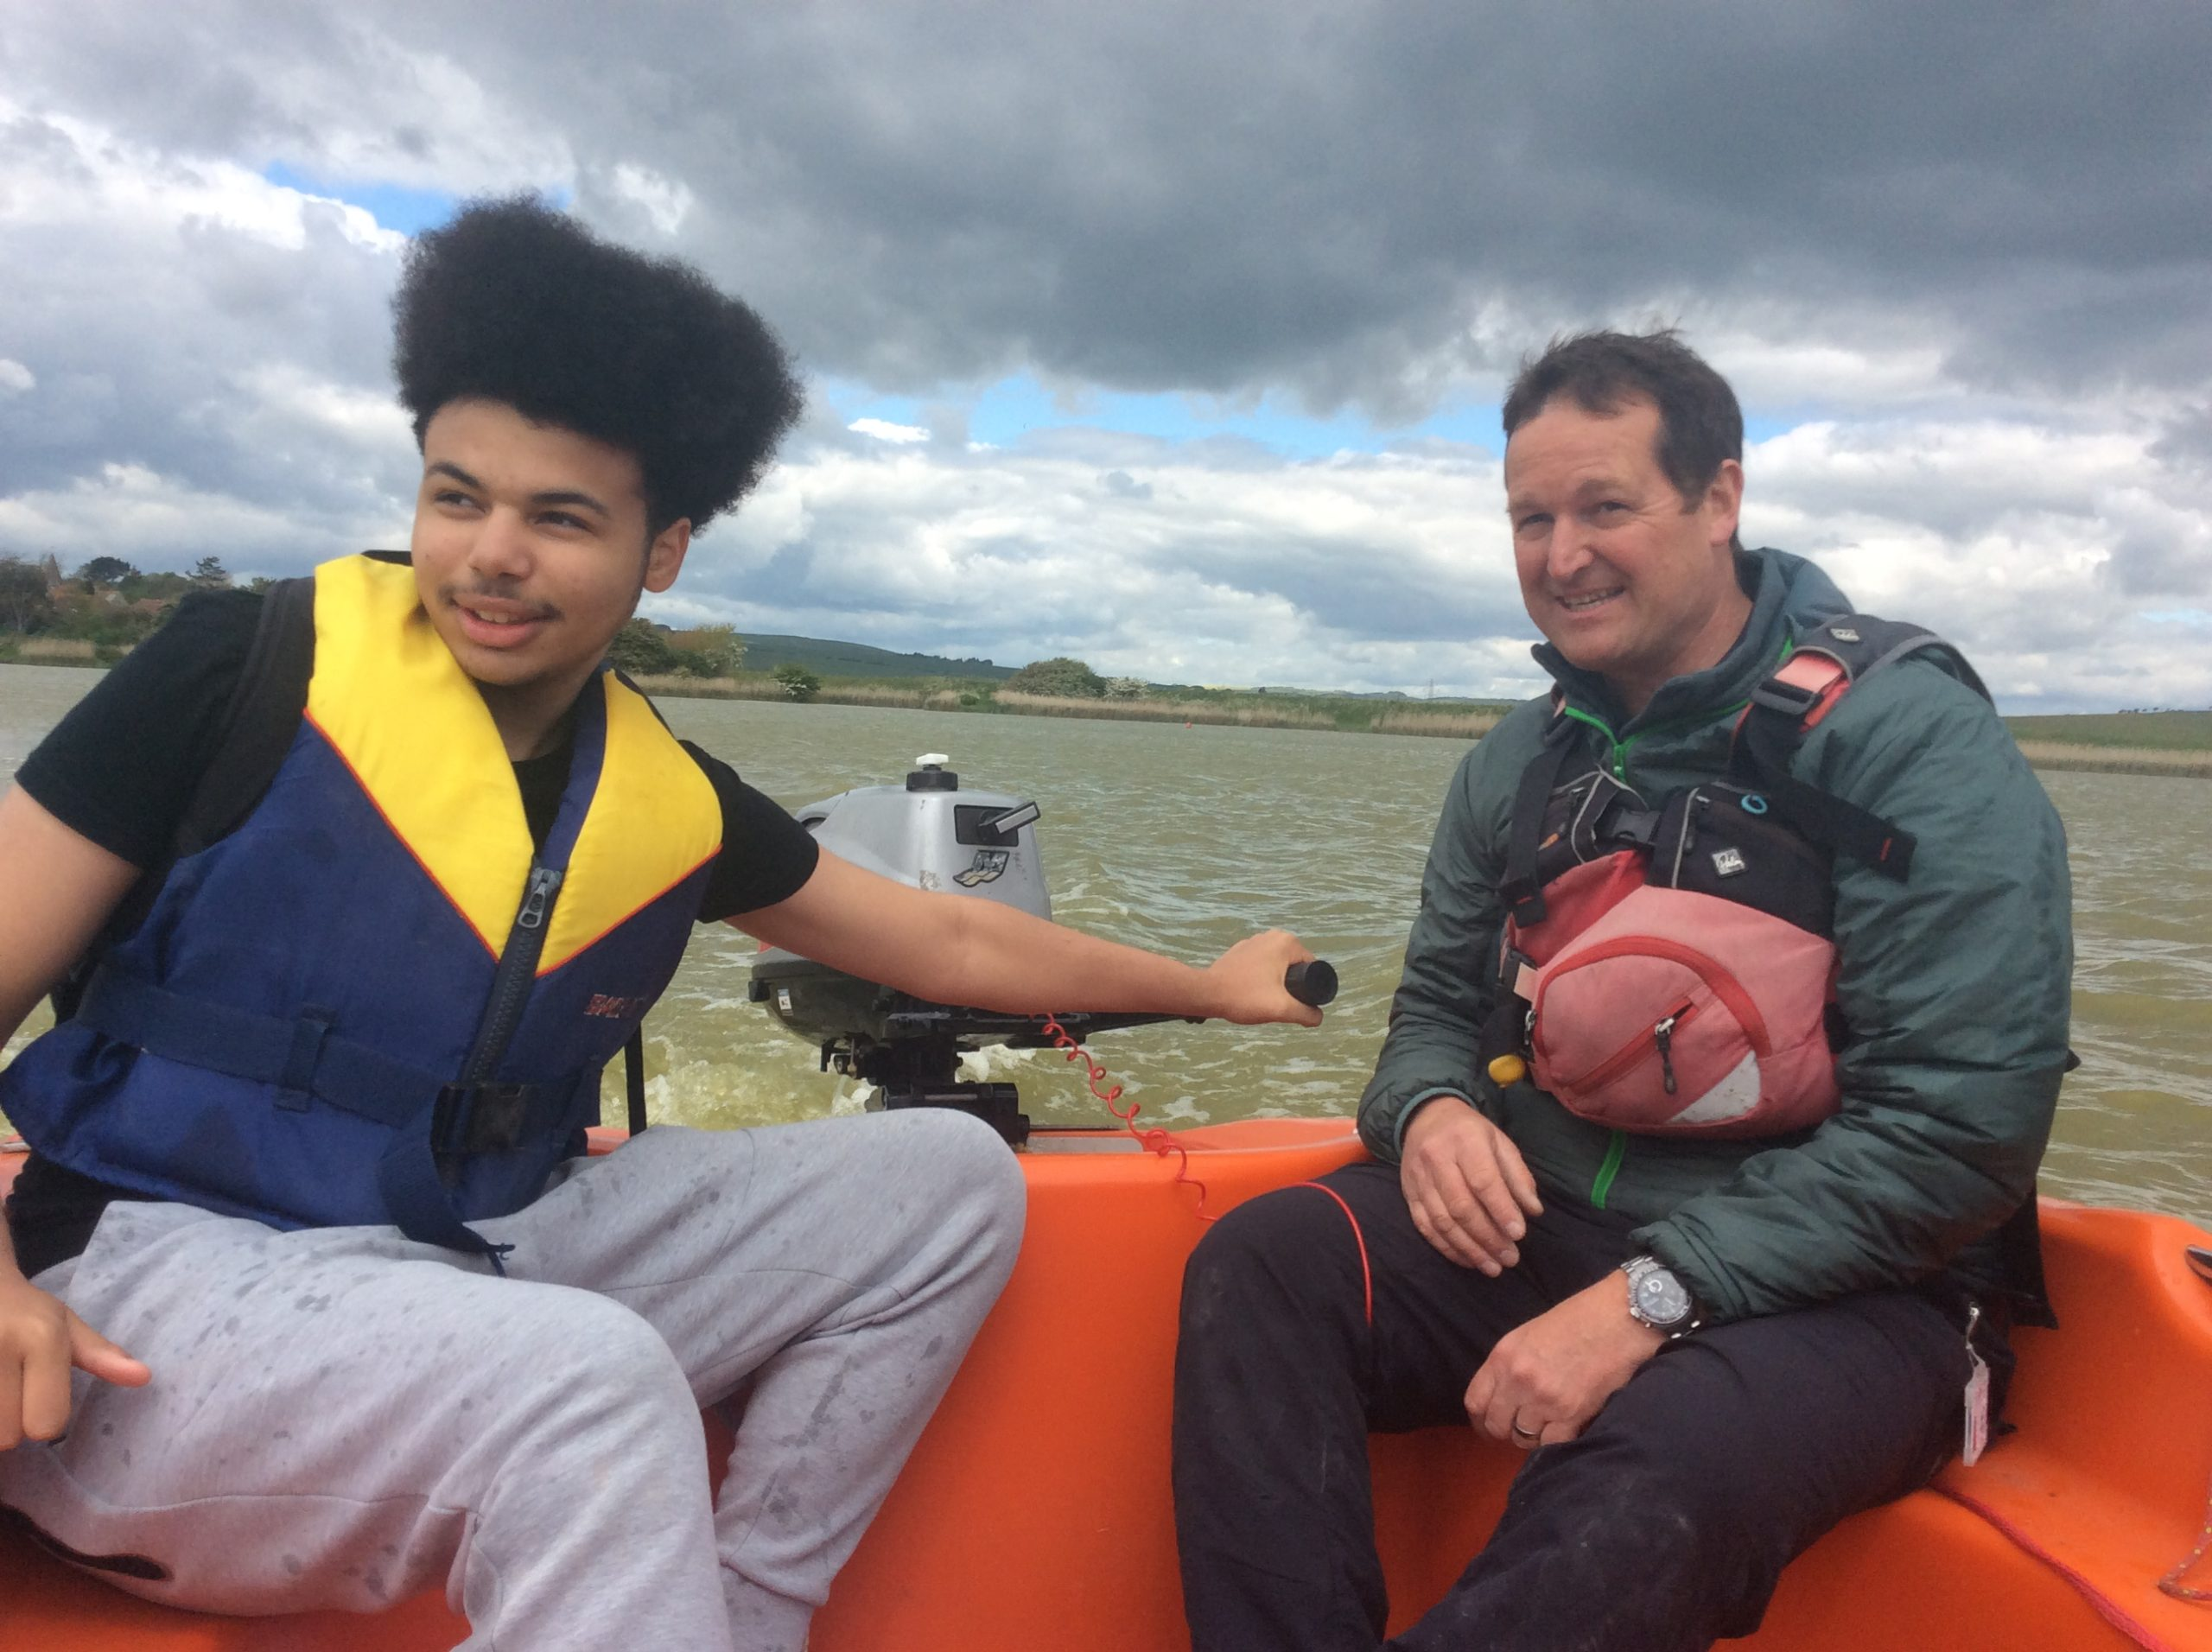 This is a picture of St. John's School learner Louie Jacobs (left) with Andy Hamilton, Outdoor Education teacher at St. John's School, sailing on Piddinghoe lake